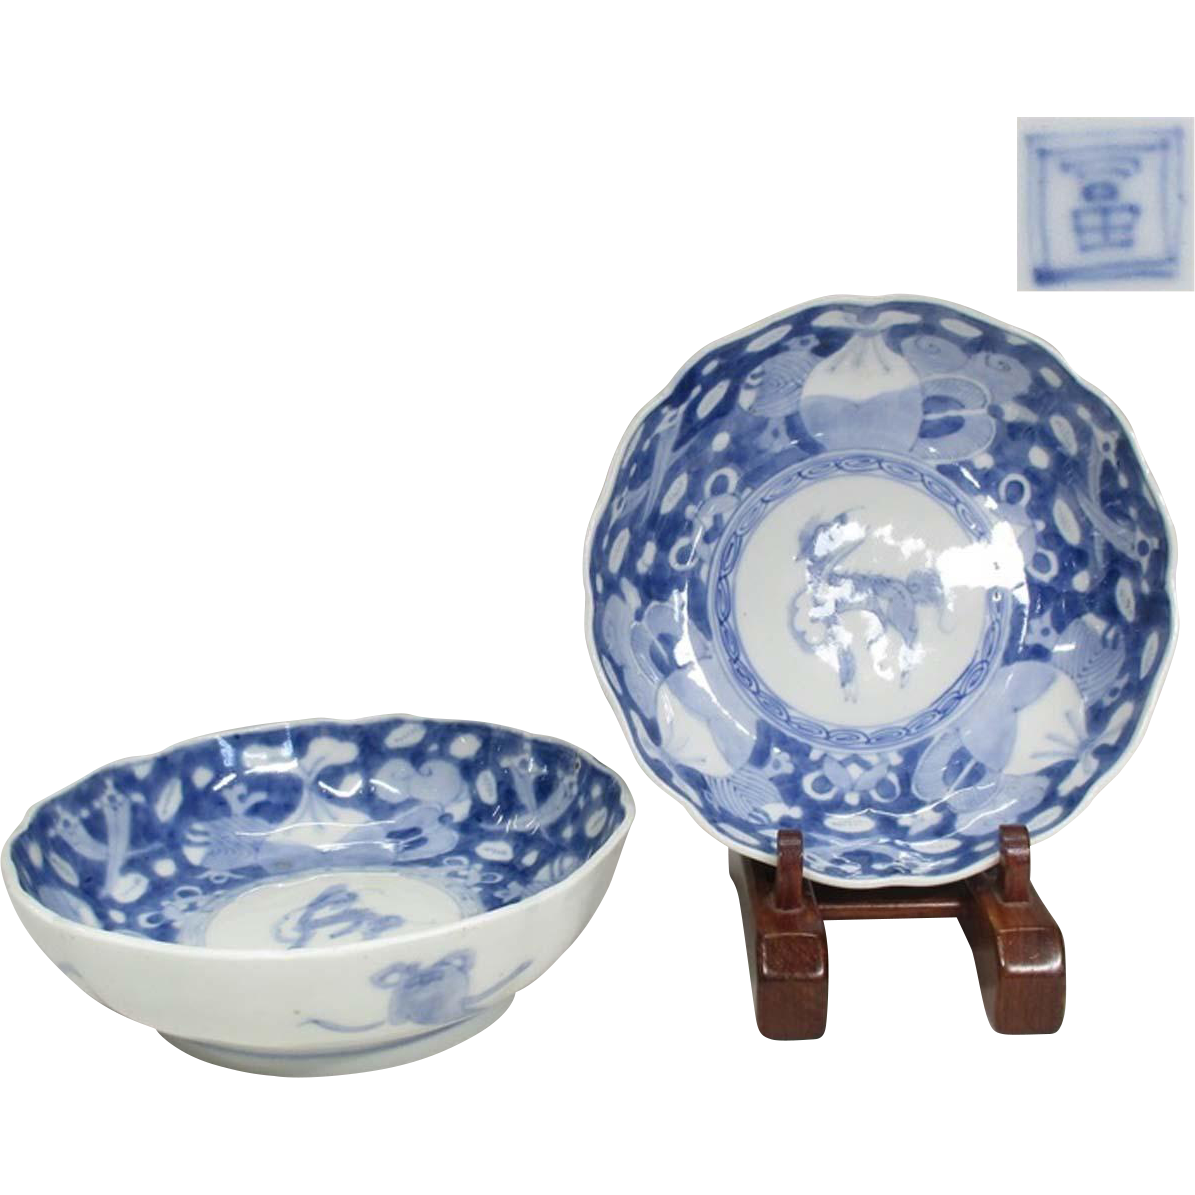 Japanese Edo Antique Imari Pair of Dishes with Kirin Signed Wealth or Tomi 富